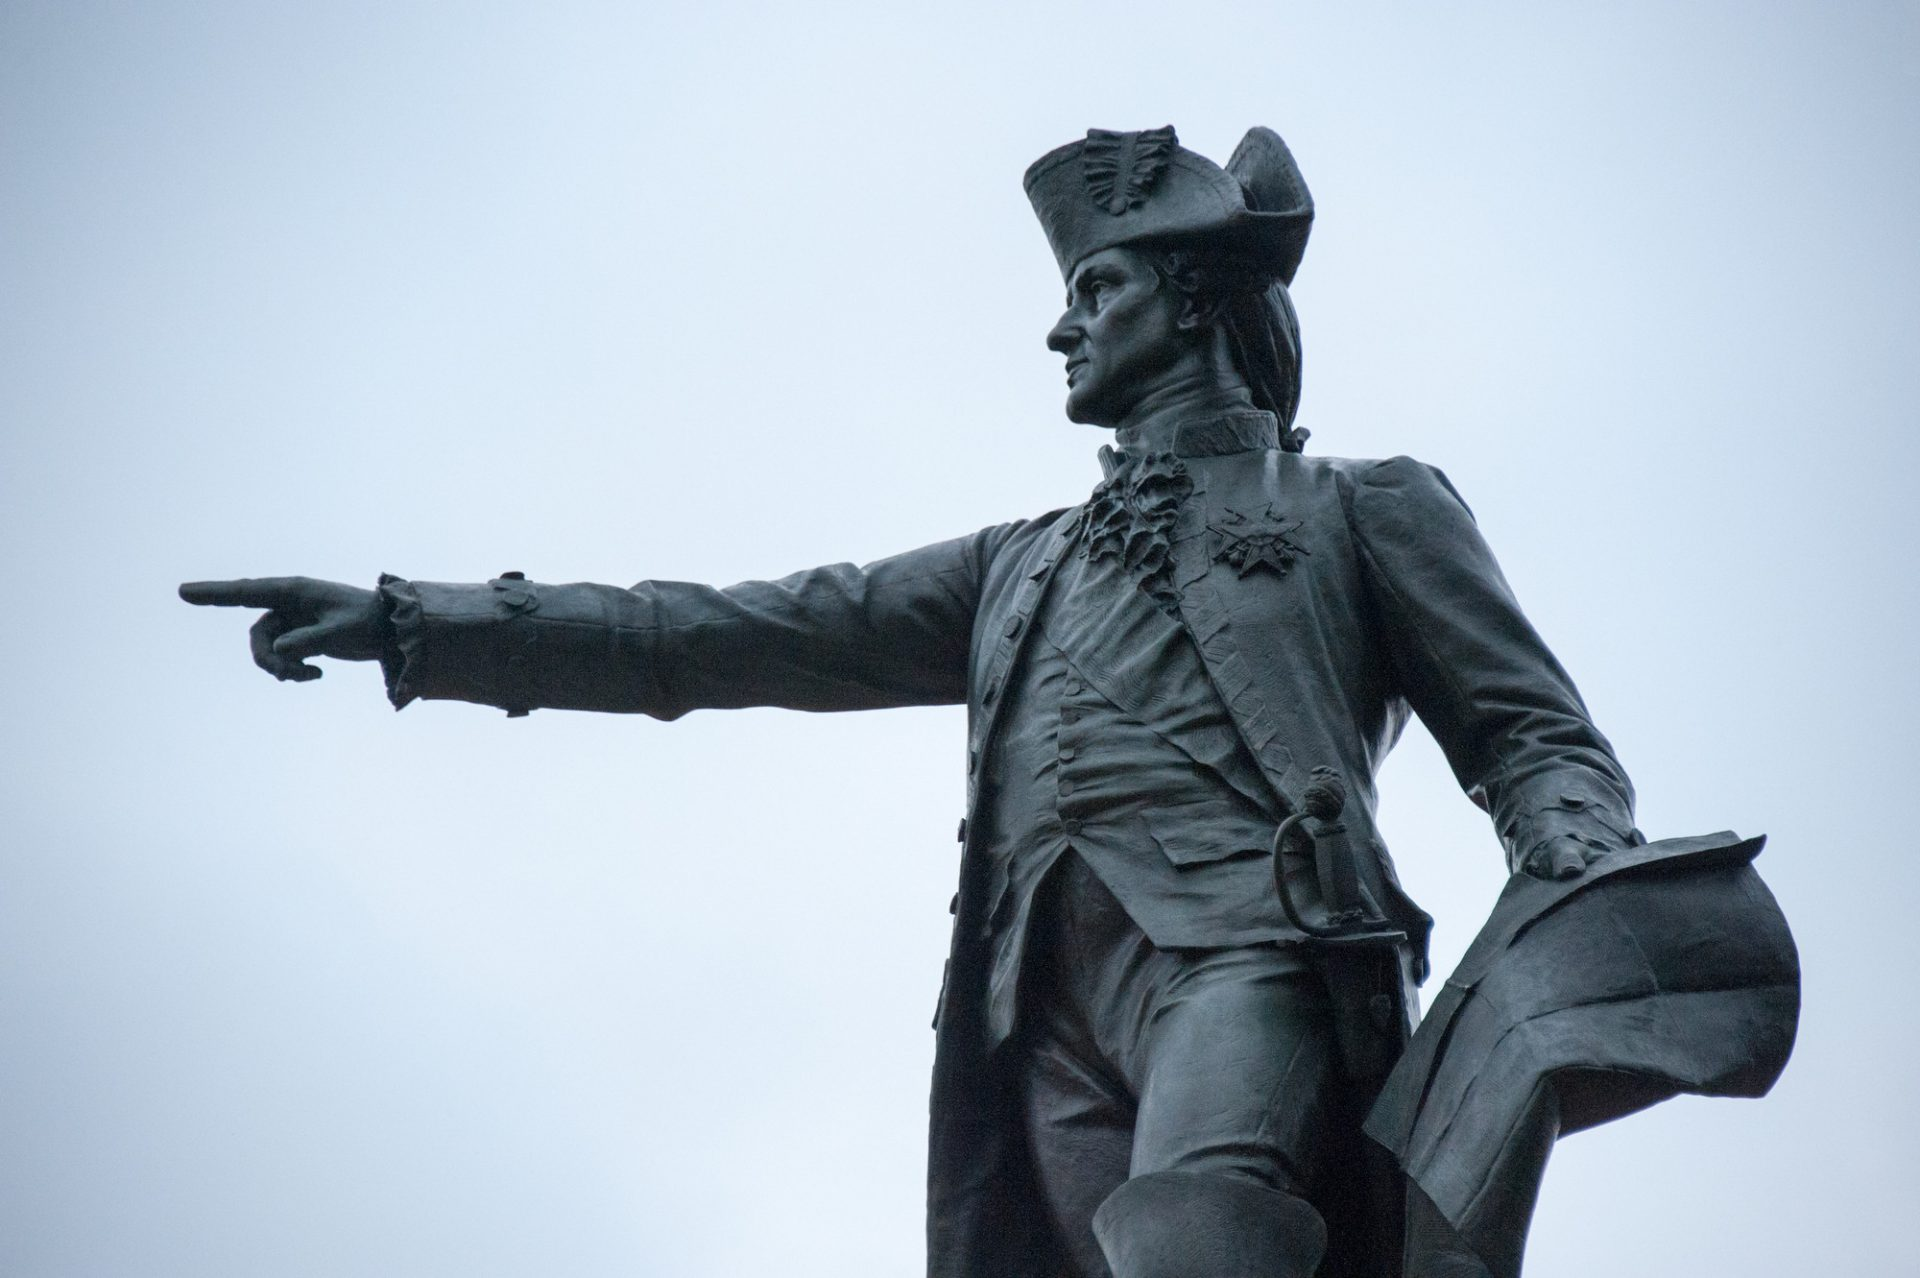 Photo: Statue near The White House, Washinton, District of Columbia.